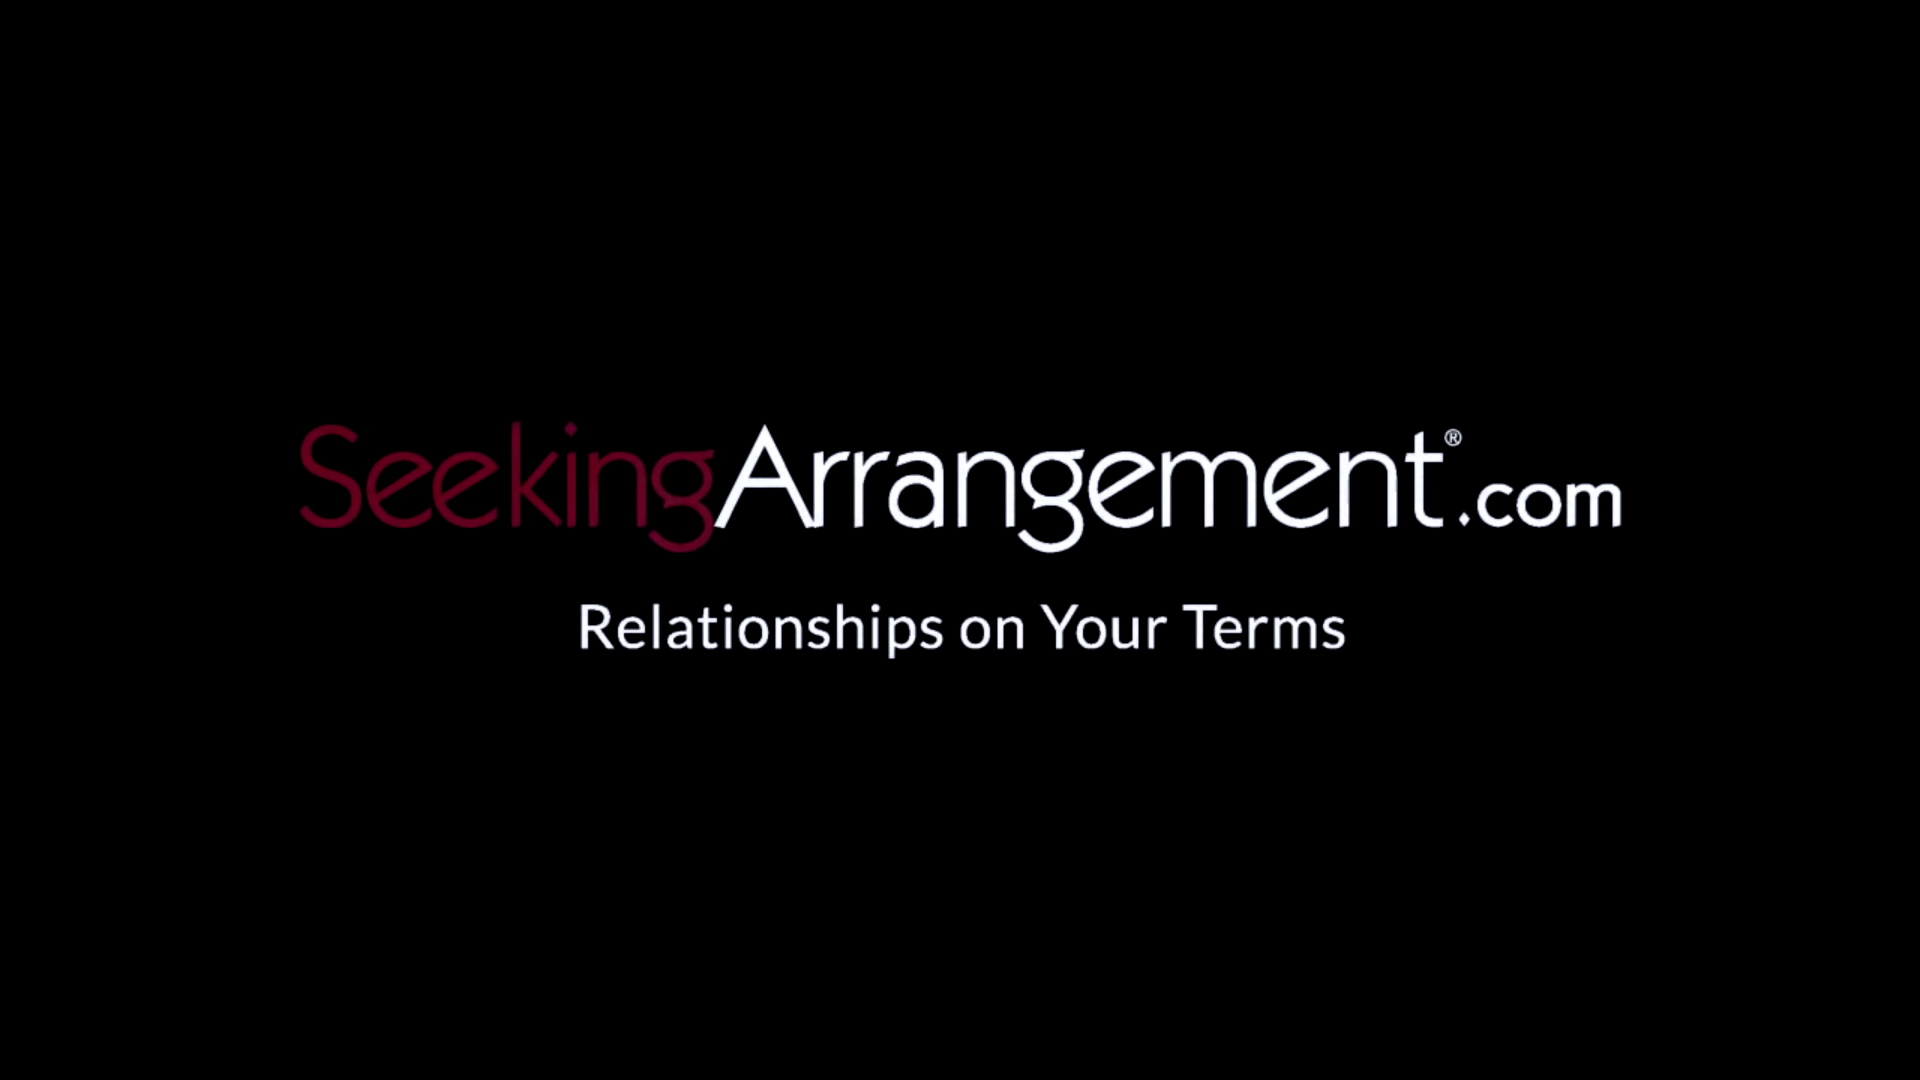 Seeking Arrangement Issues Trademark Infringement Lawsuit Against Successful Match